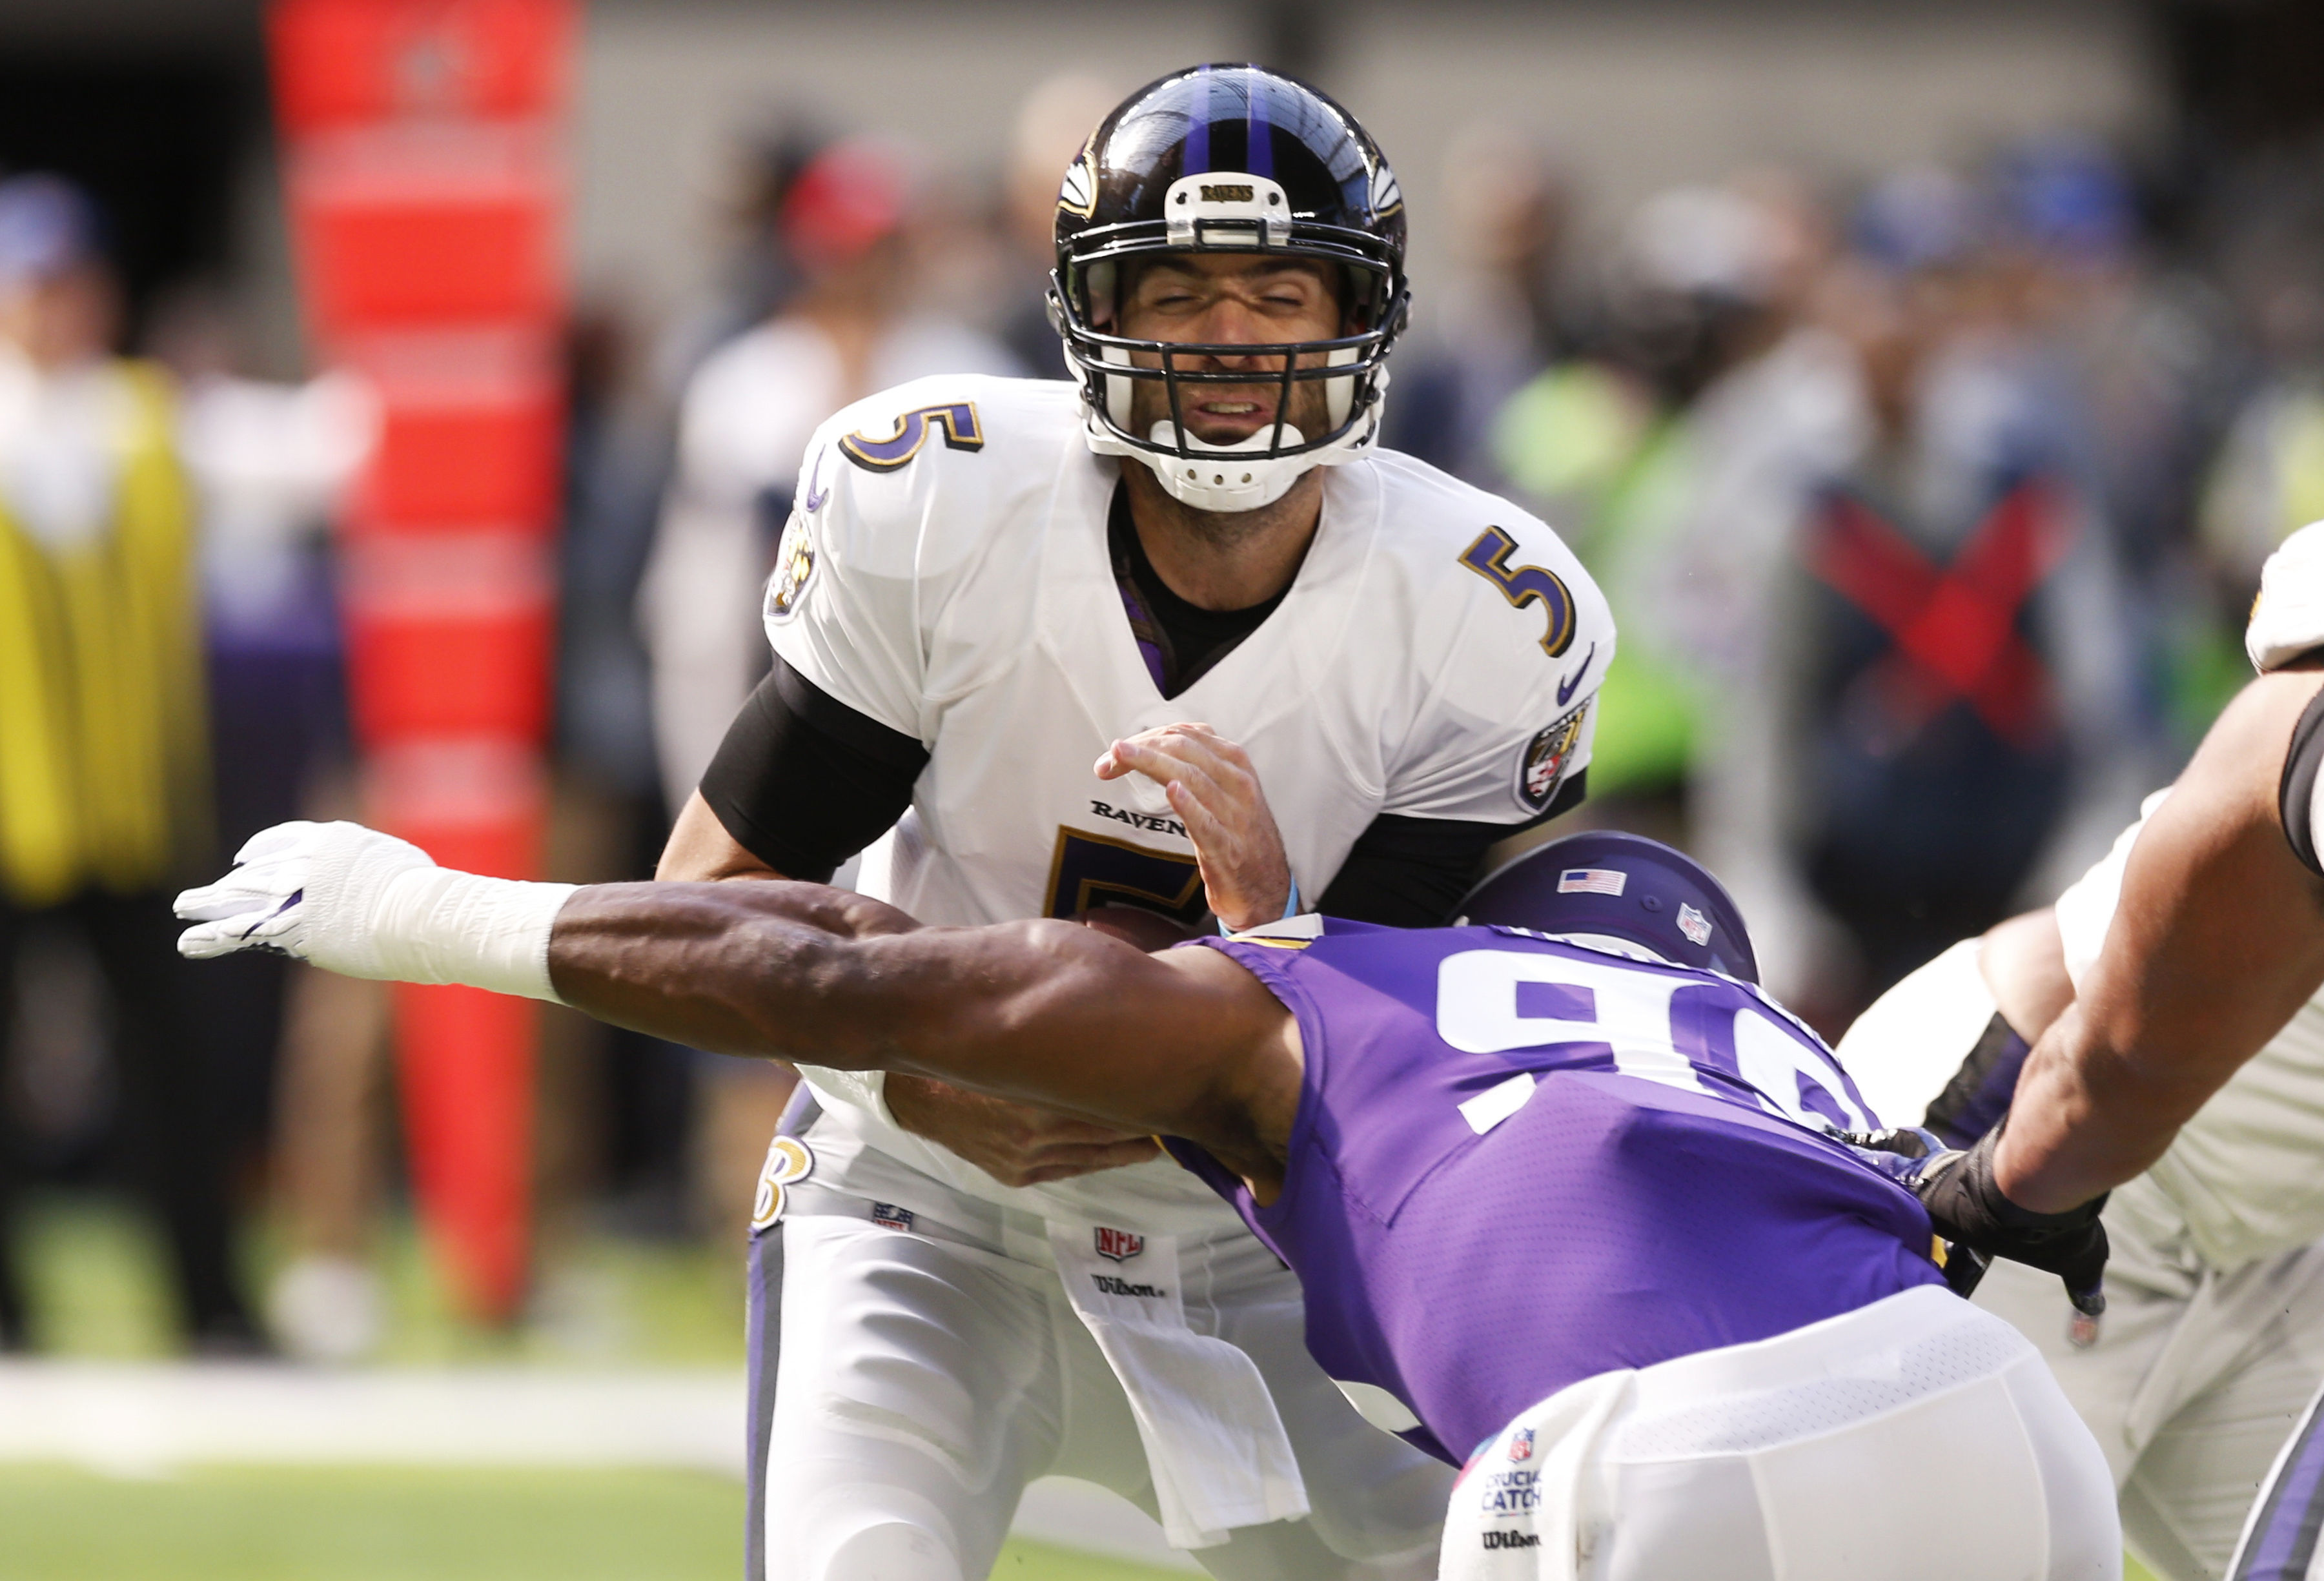 Baltimore Ravens quarterback Joe Flacco (5) is sacked by Minnesota Vikings defensive end Danielle Hunter during the first half of an NFL football game, Sunday, Oct. 22, 2017, in Minneapolis. (AP Photo/Jim Mone)